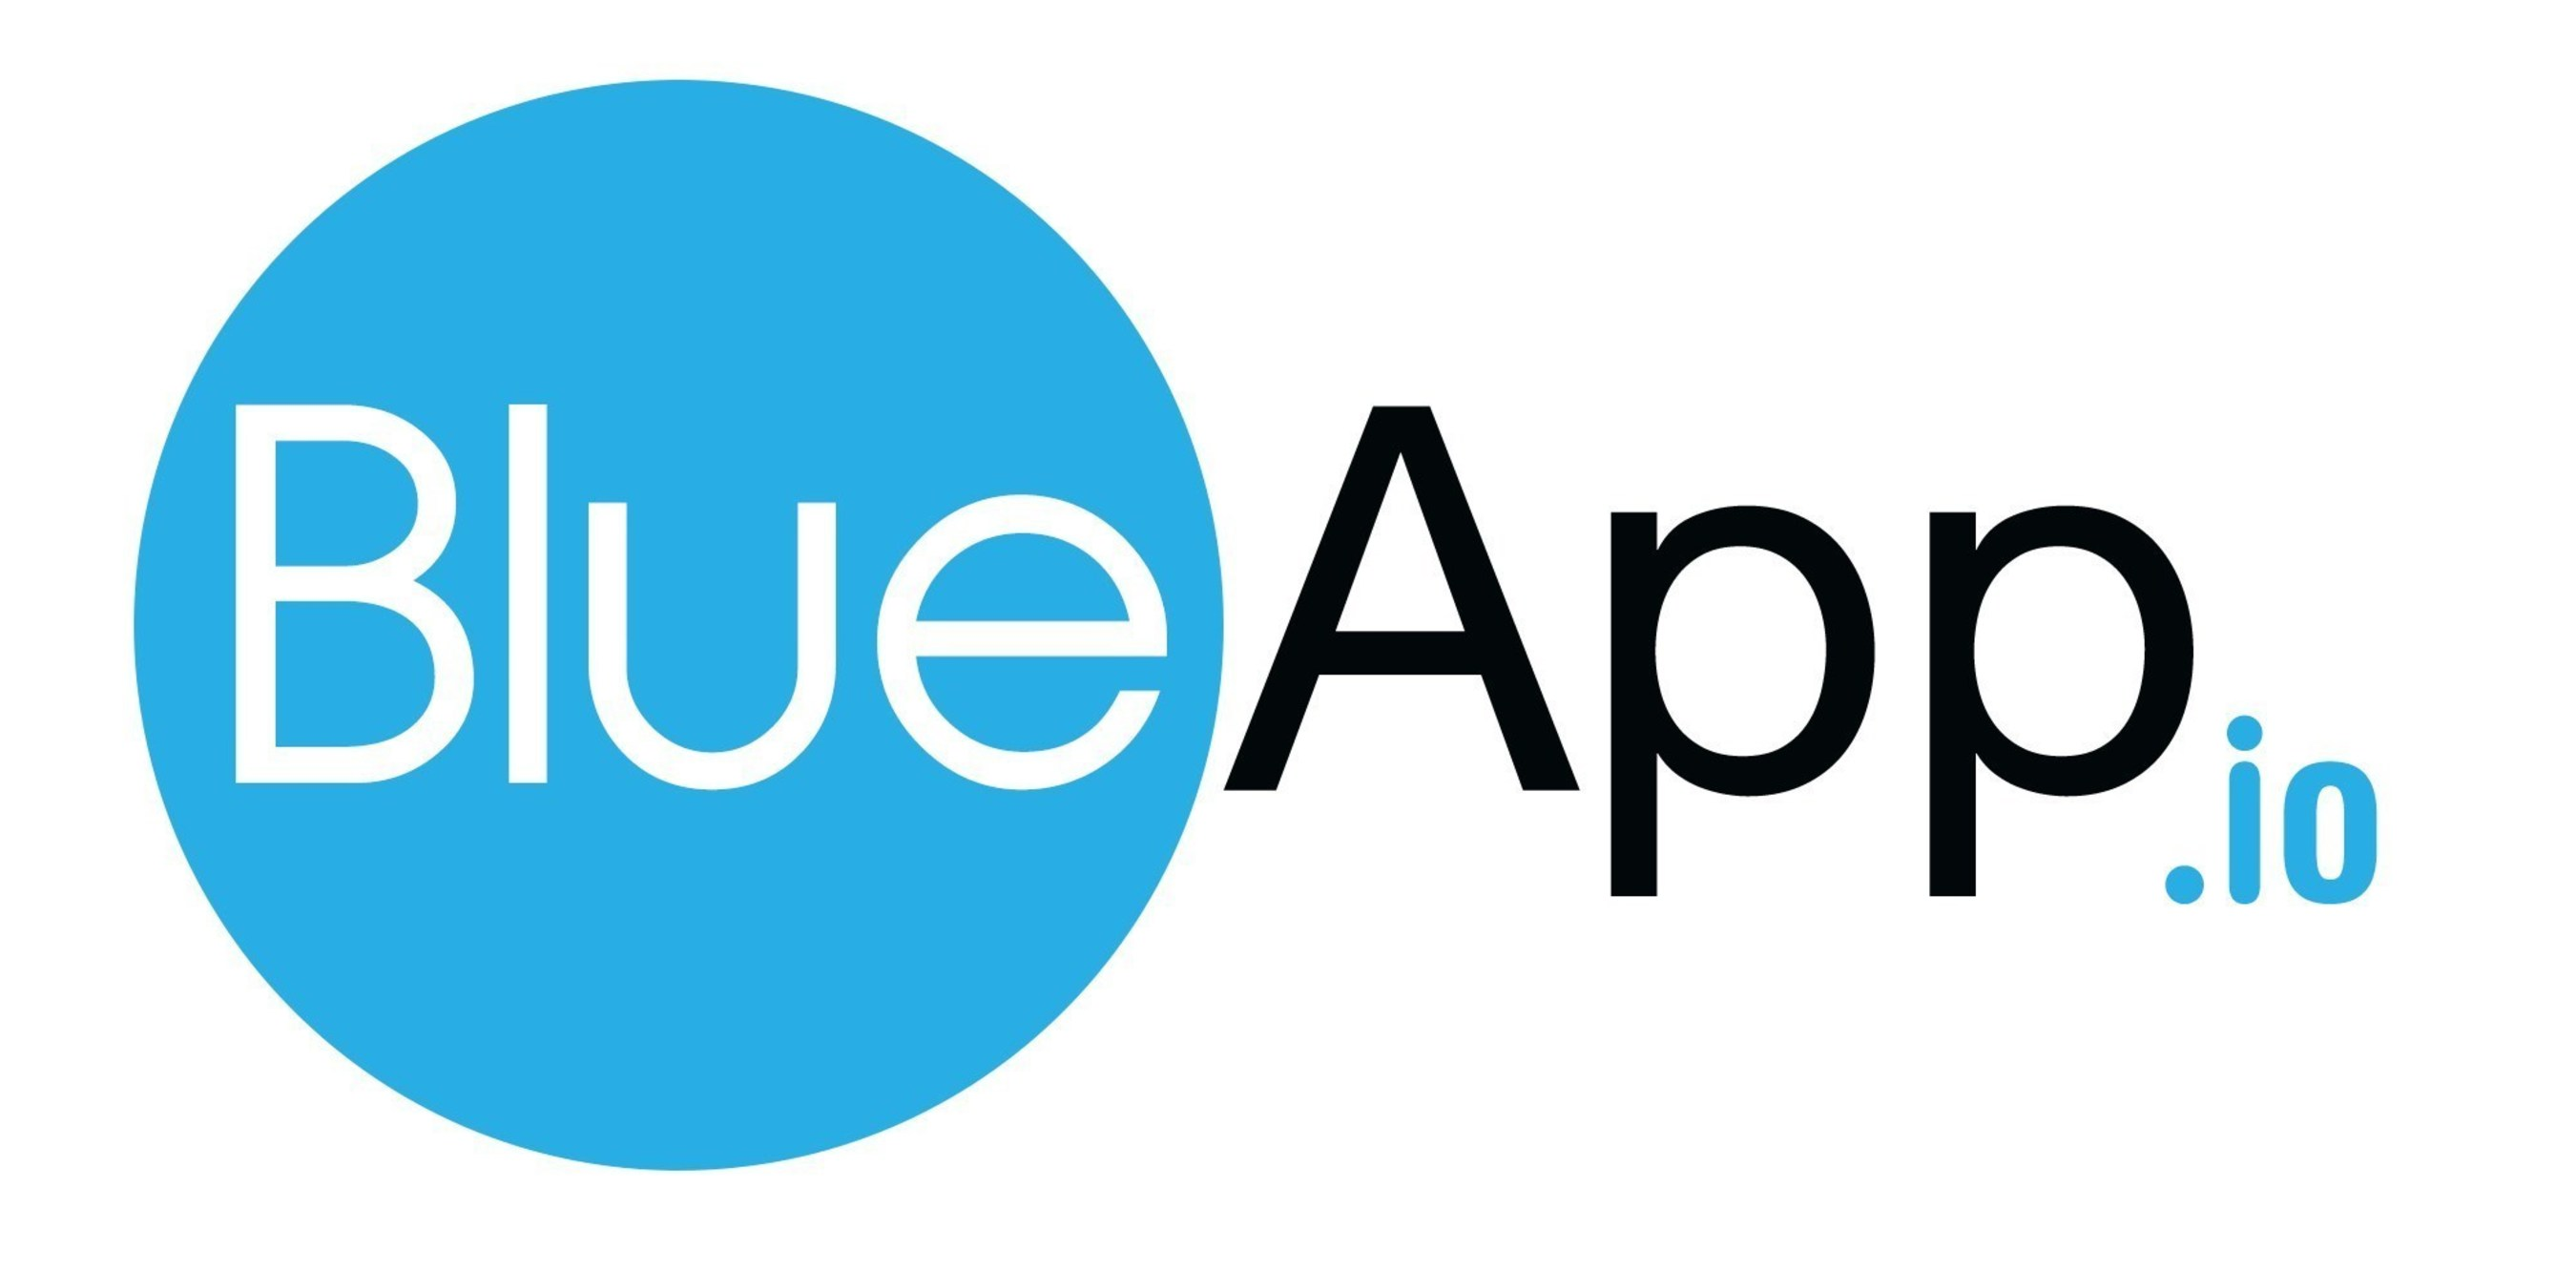 Easily Develop Bluetooth IoT Applications With BlueApp.io, Now Supporting the Proposed W3C Standard for Web Bluetooth